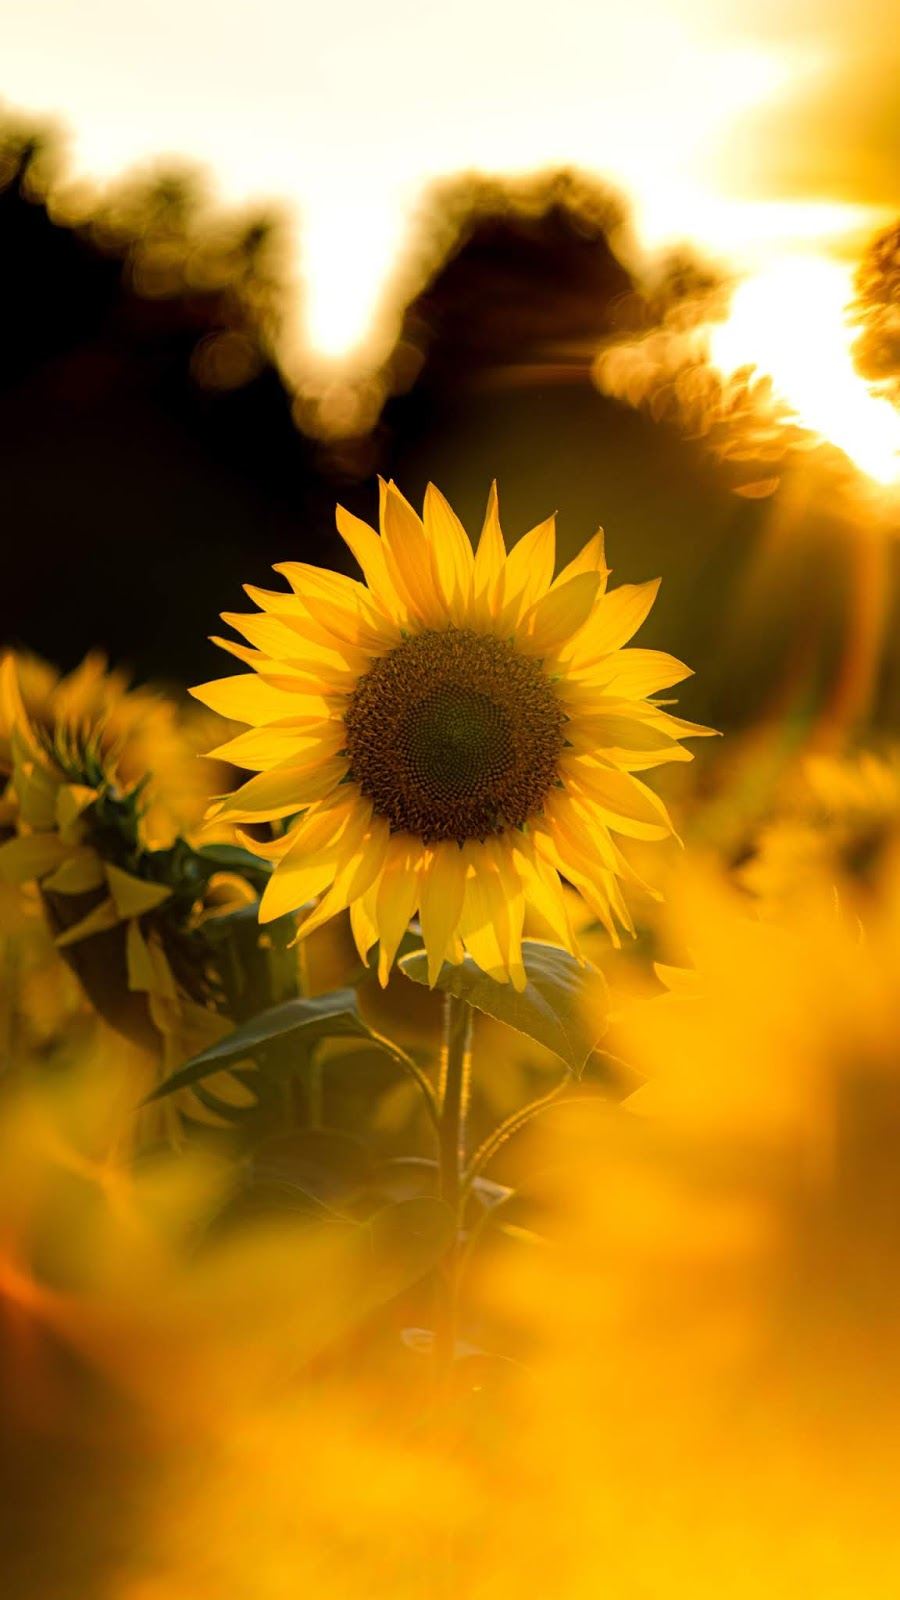 Sunflower android wallpaper